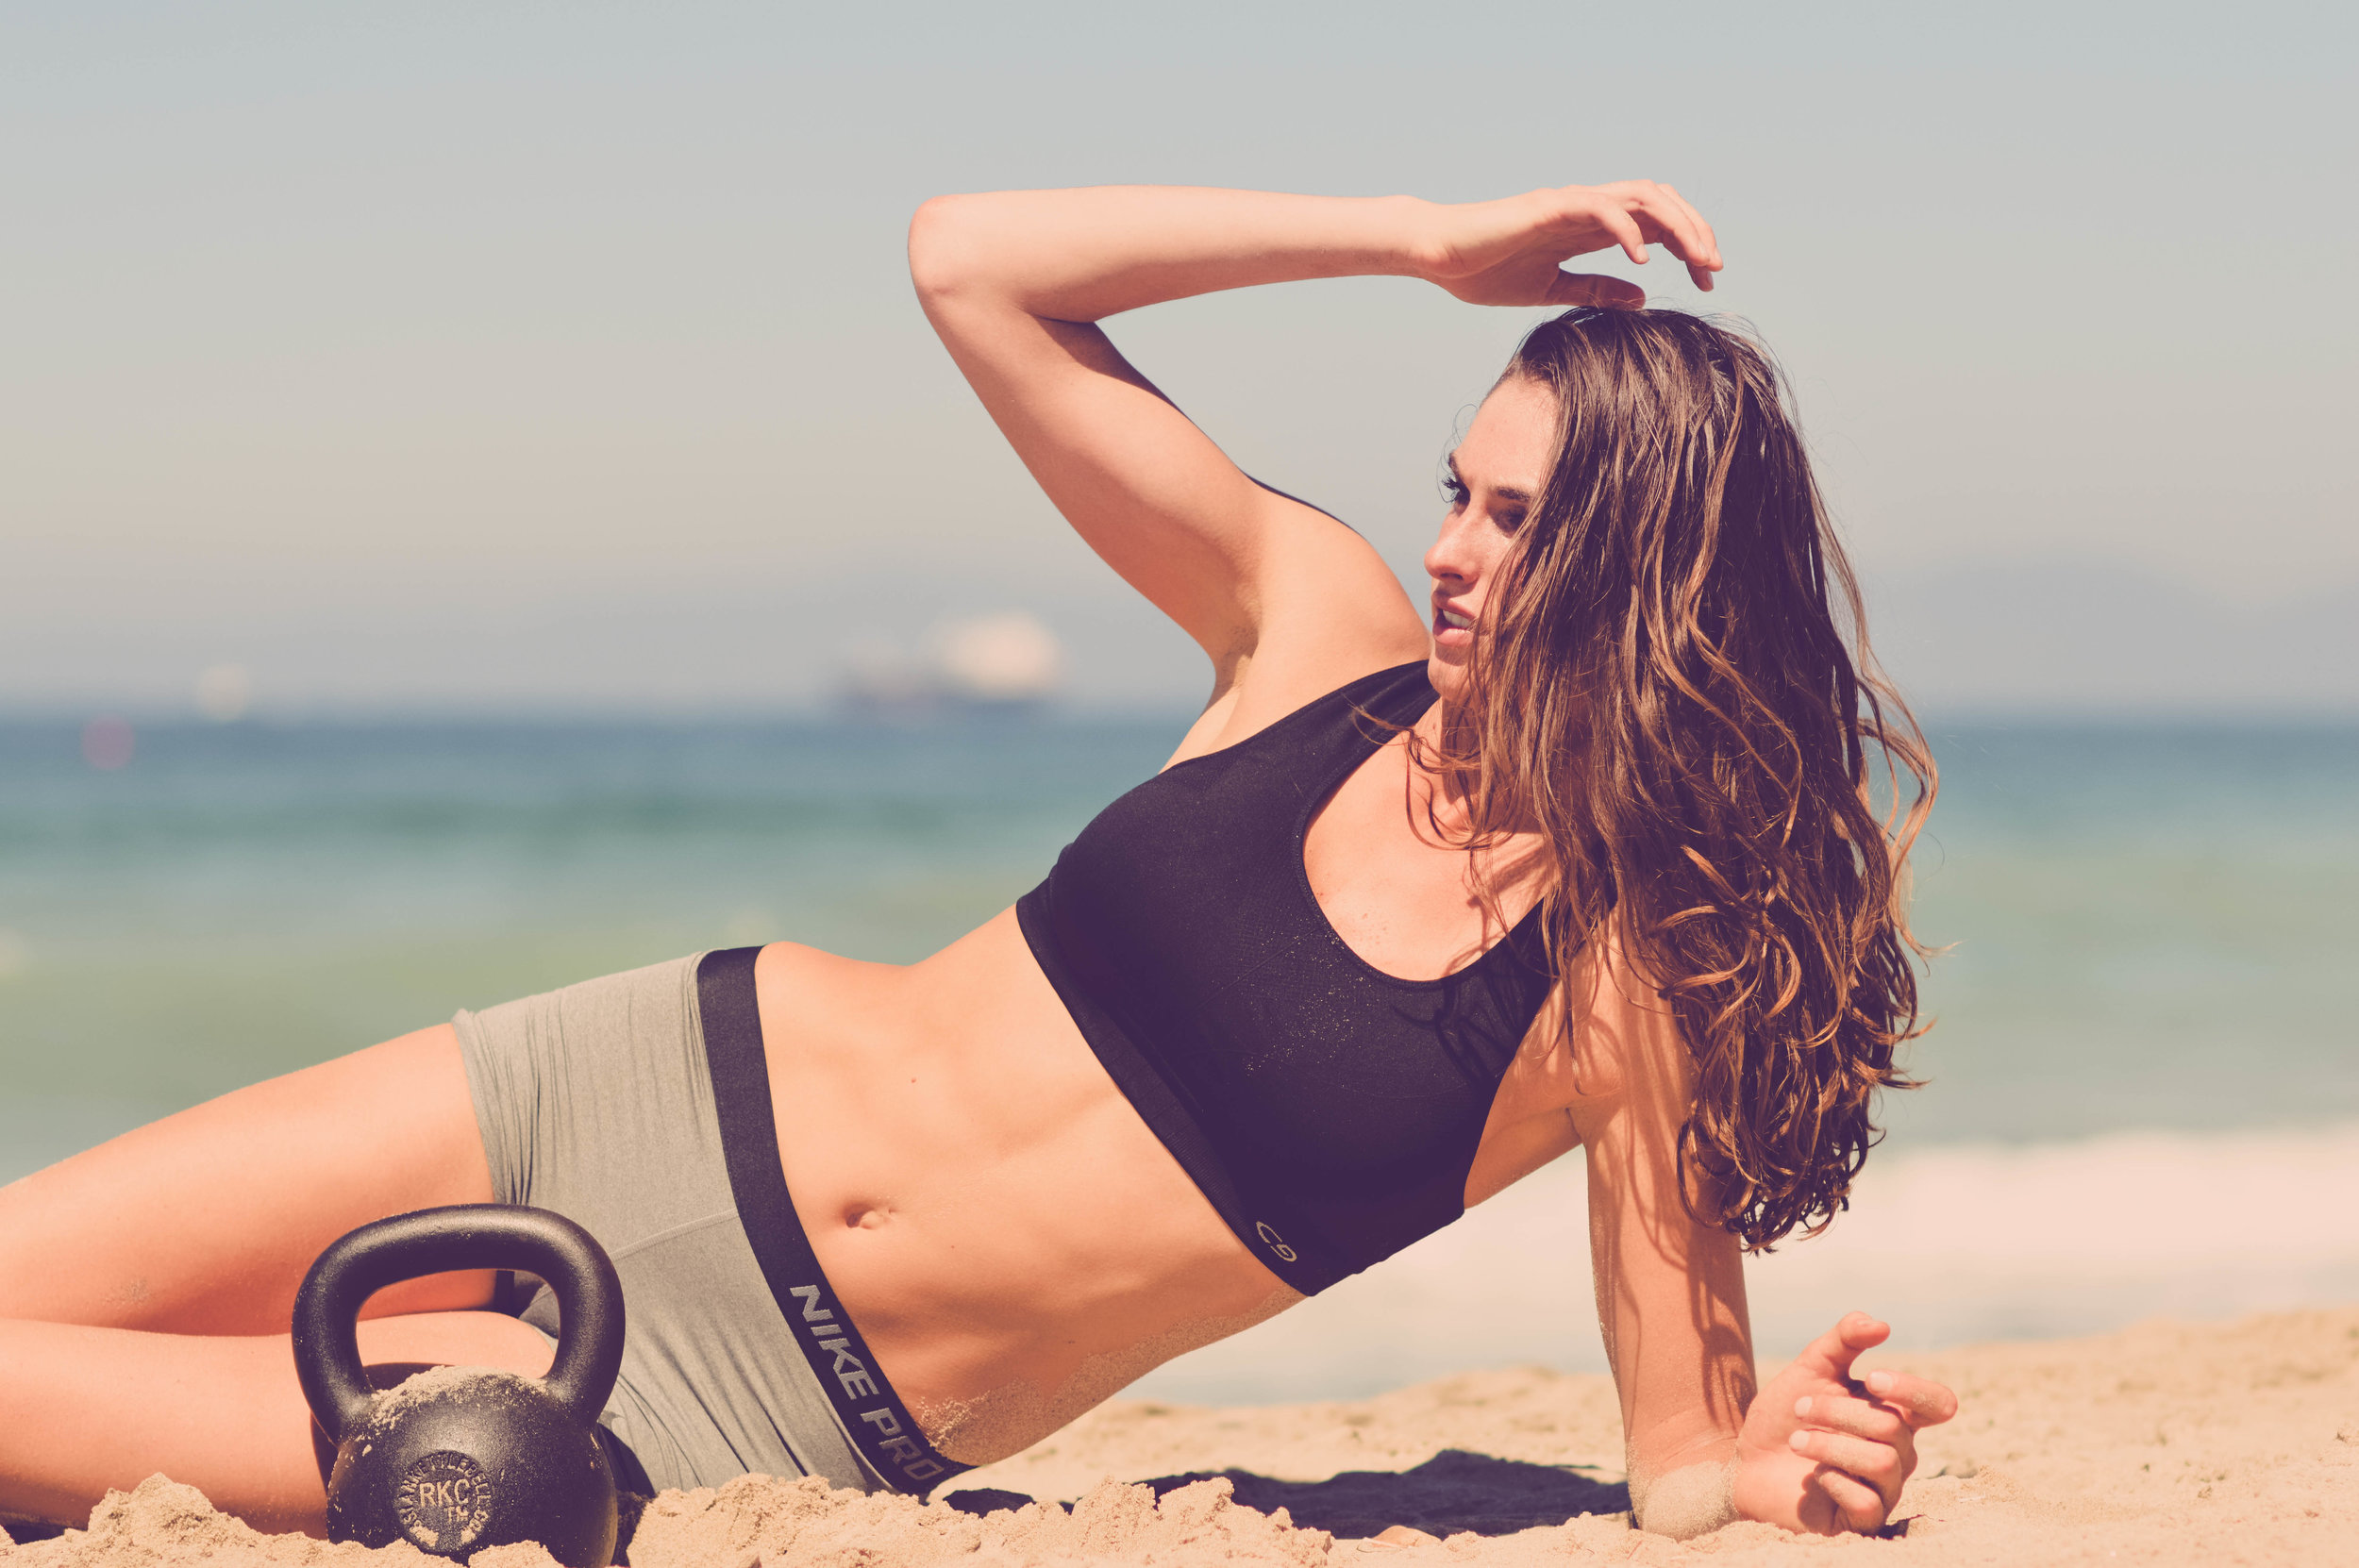 Jessica Sykora is a Personal Trainer that specializes in Prenatal Personal Training and In-Home Personal Training throughout the South Bay. Personal Trainer South Bay, Prenatal Trainer South Bay, In-Home Personal Trainer.